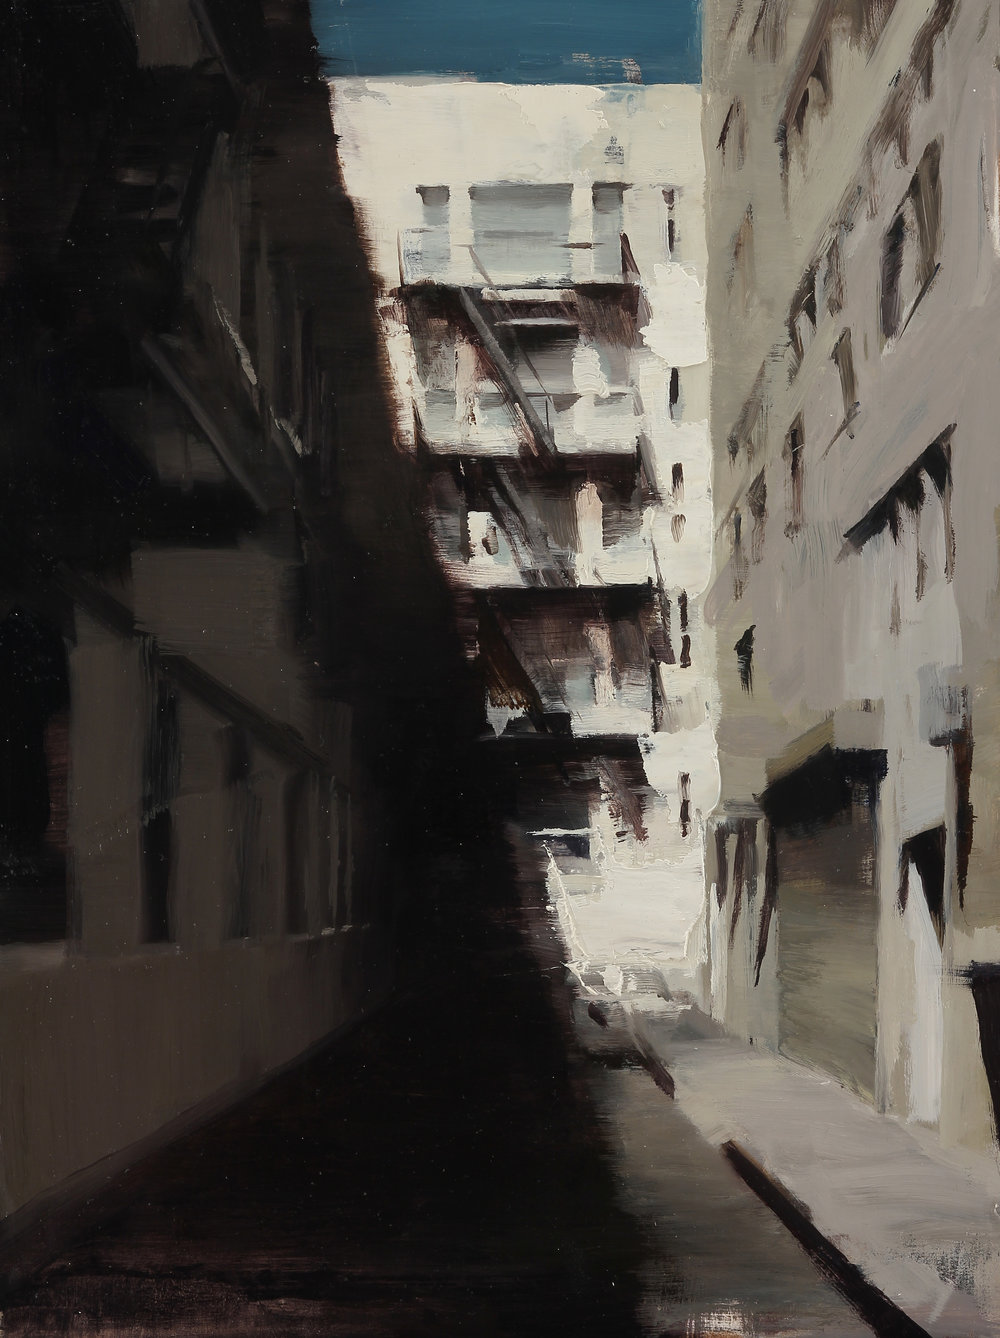 Shadows of an Alley 16 X 12 inches oil on panel Framed  SOLD